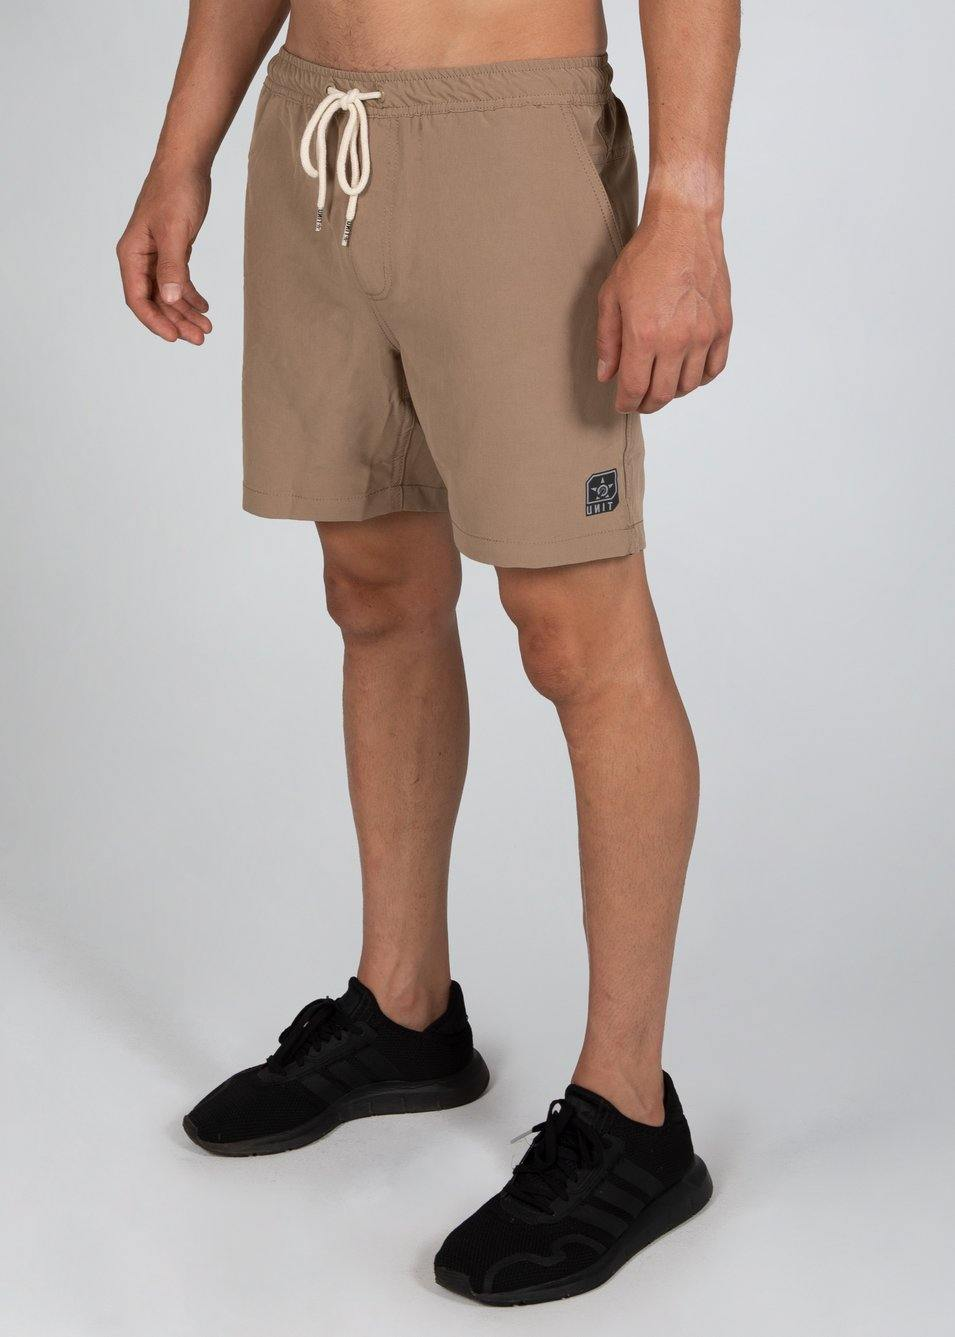 Unit Boardwalk Walkshorts available at My Harley and Rose